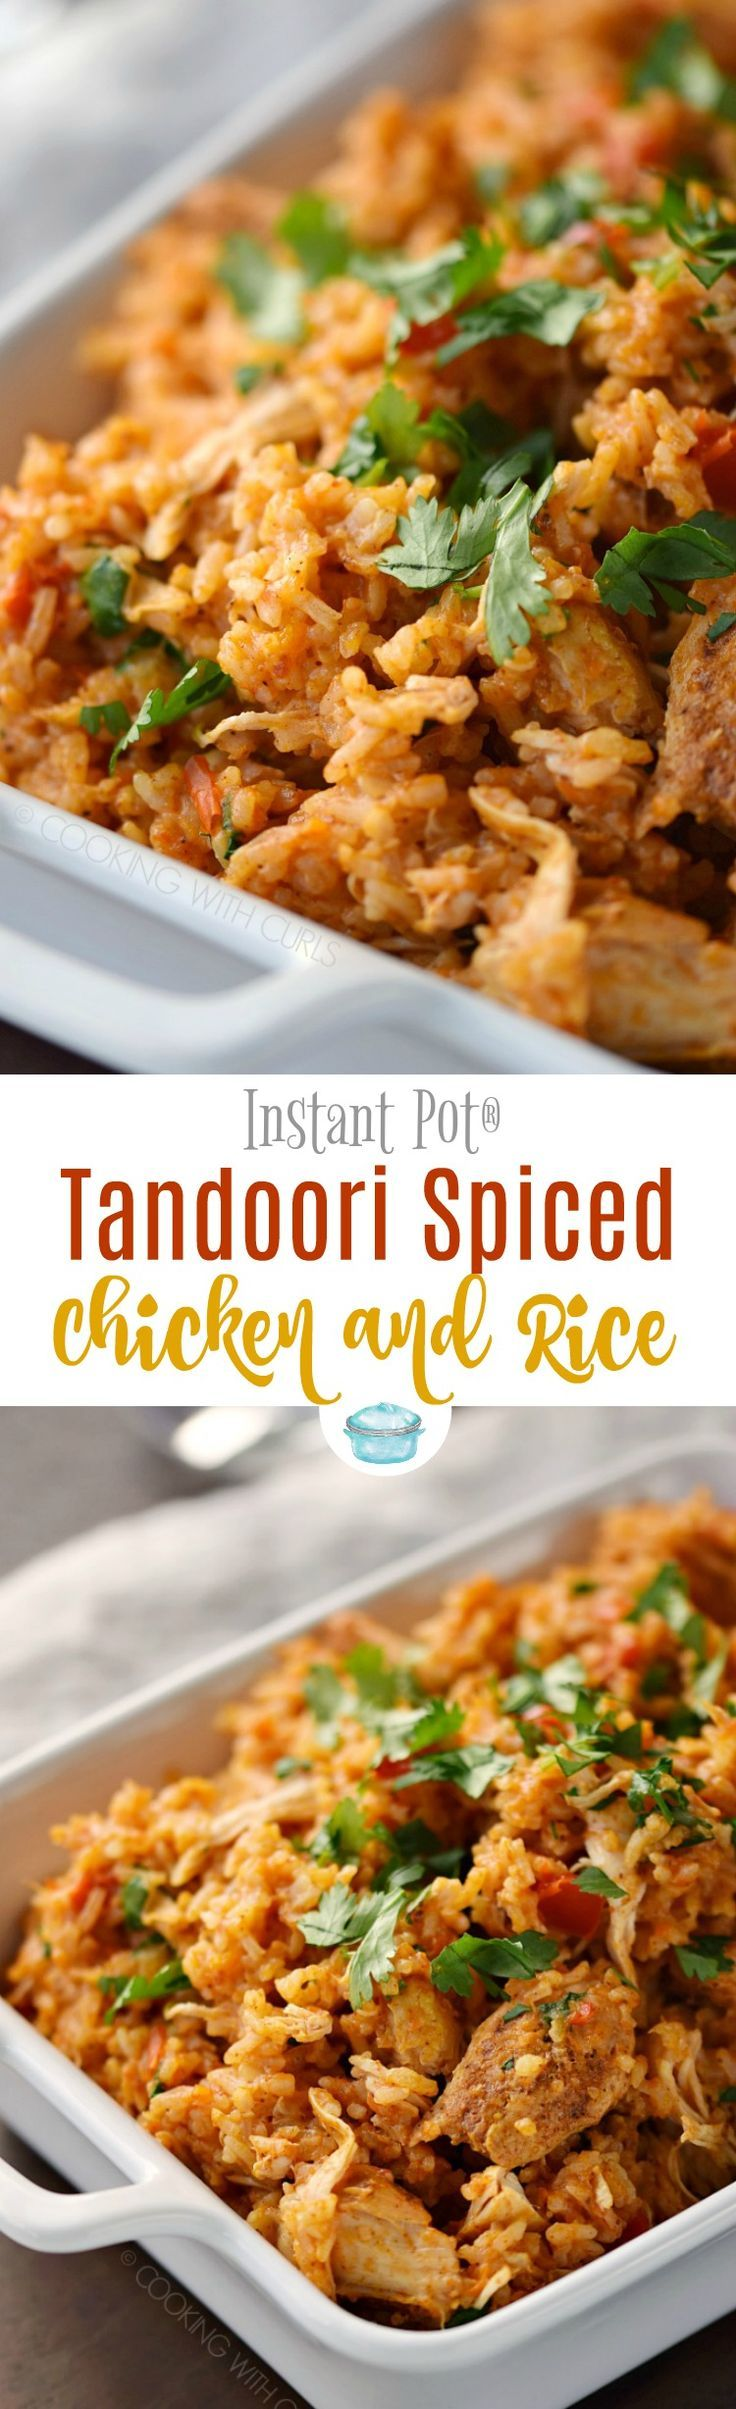 Instant Pot Tandoori Spiced Chicken and Rice is an easy weeknight meal that is packed with flavor and sure to make the entire family happy! #instantpot #chicken #tandoori #maincourse  via @cookwithcurls